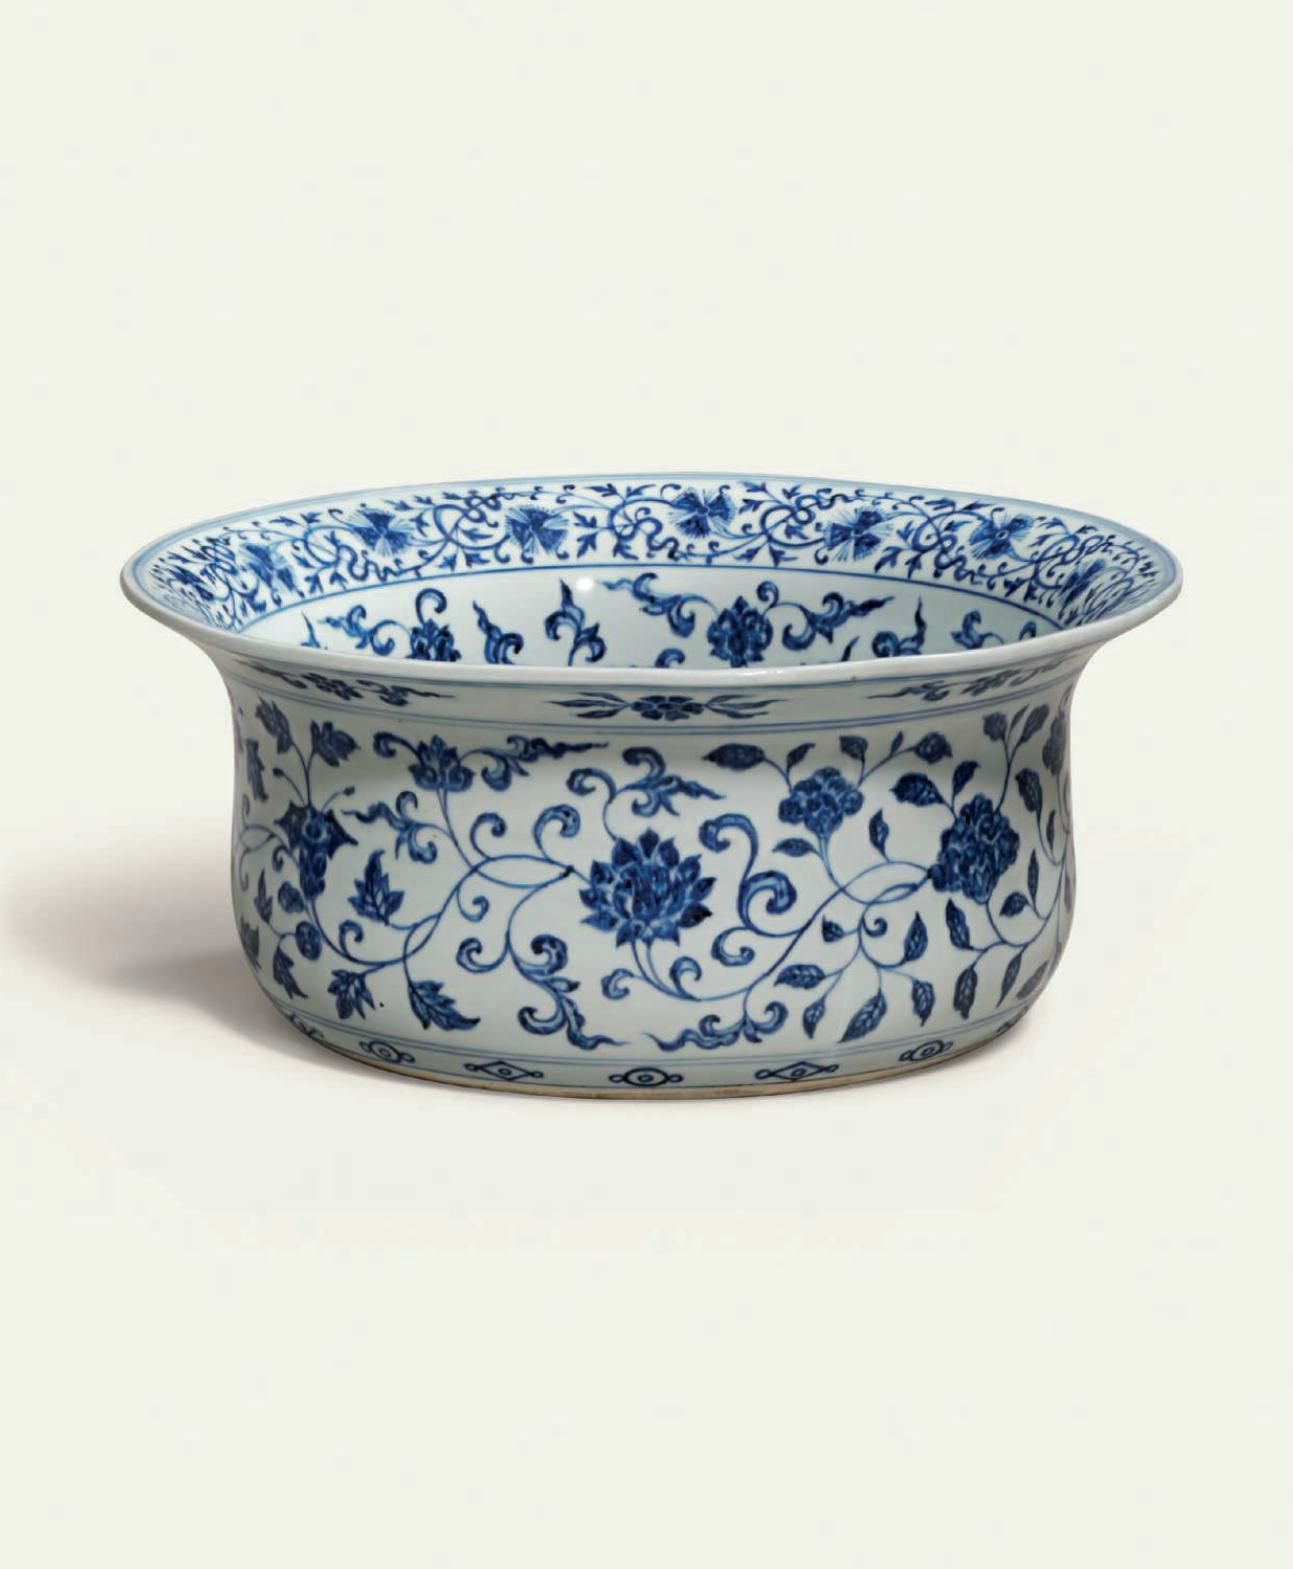 Christie S London Announces Asian Art Sales To Take Place Between 10 And 13 November Porcelain Blue Blue And White Chinese Ceramics